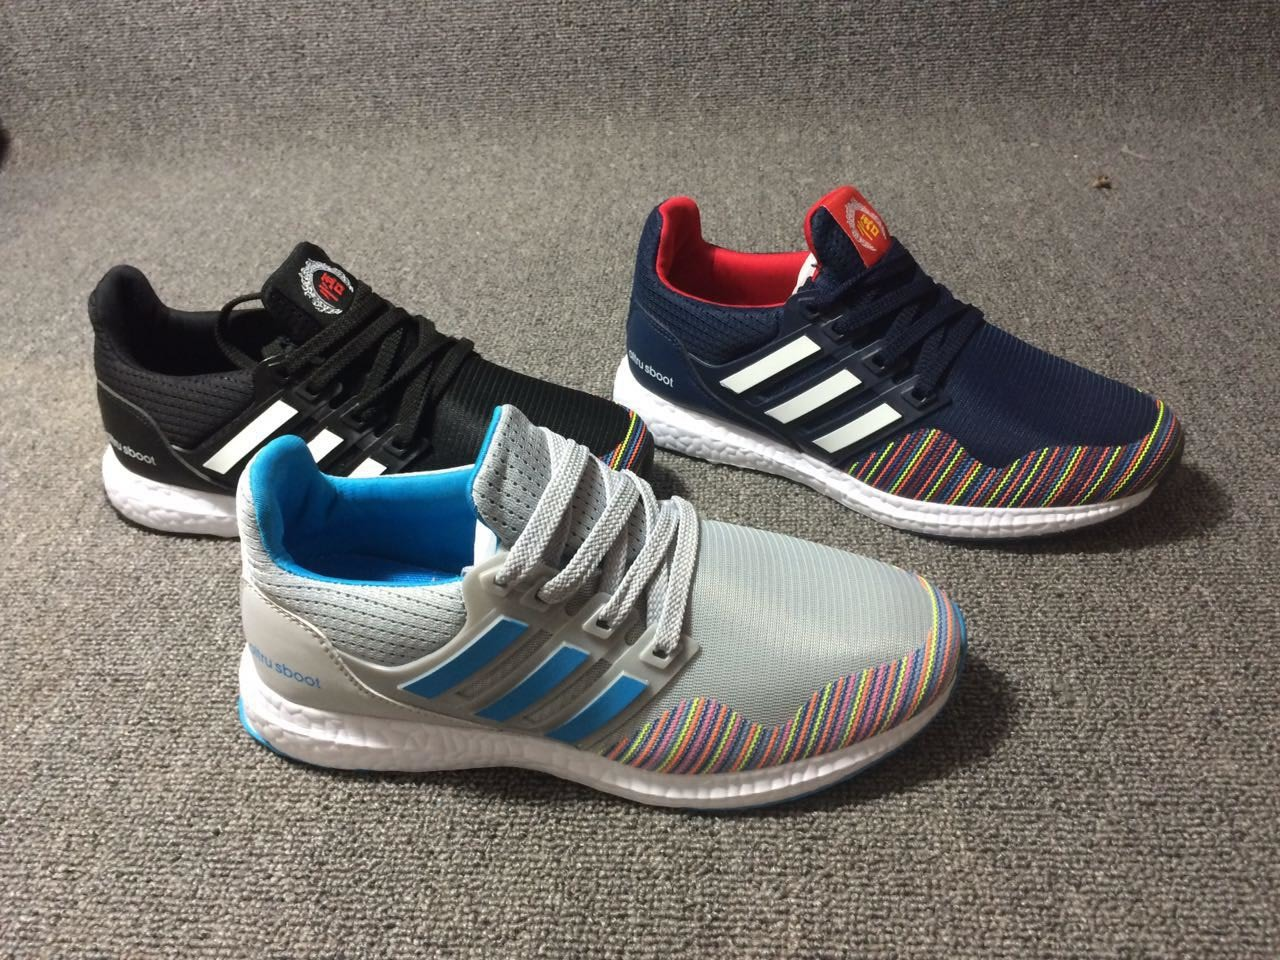 New Arriving Hot Fashion Women′s Casual Sneaker Shoes